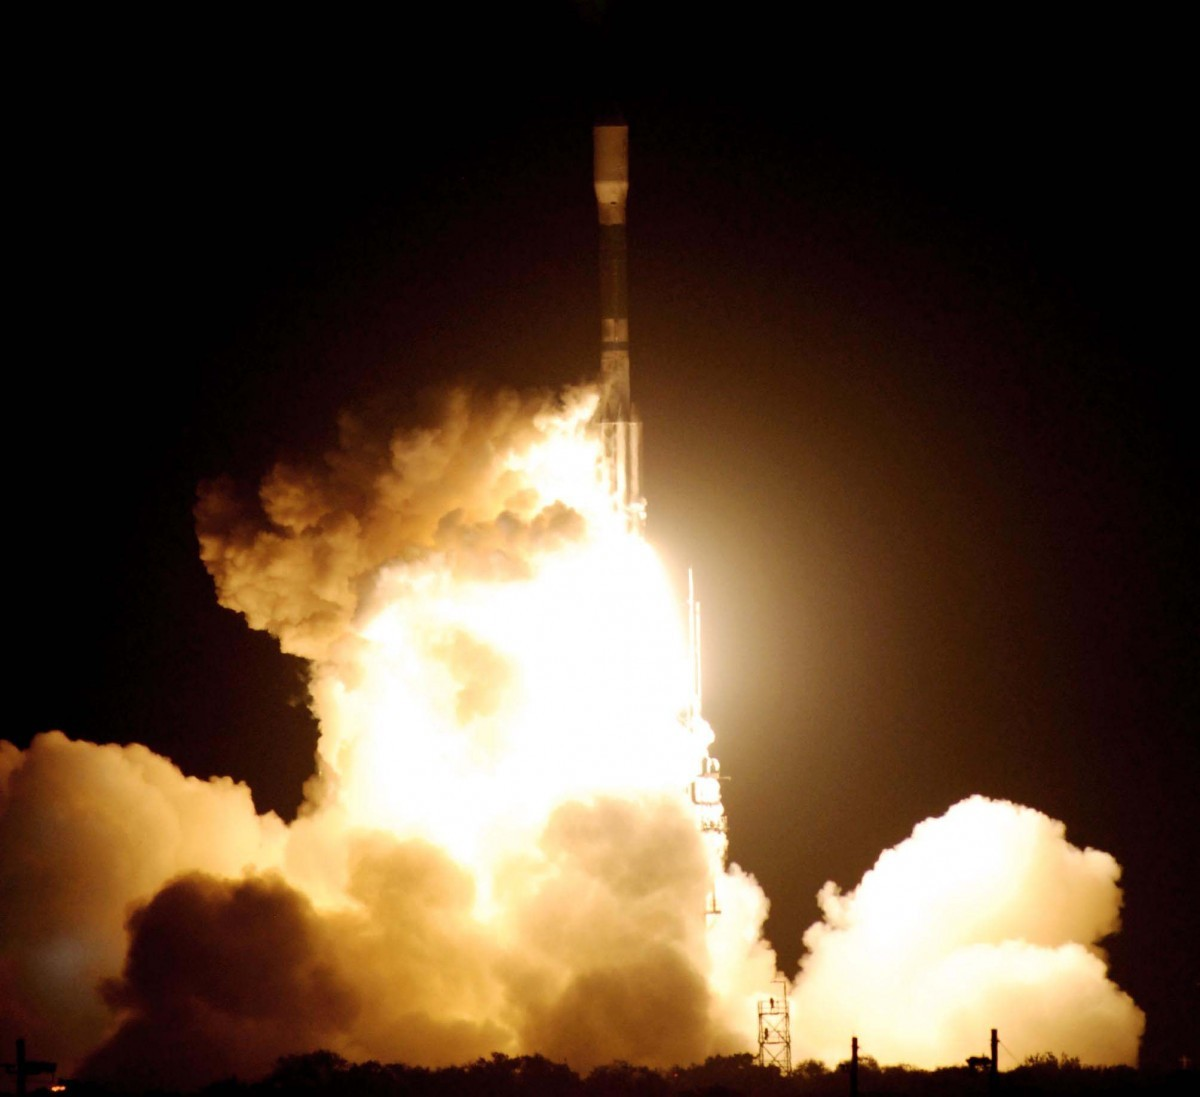 The Delta II rocket carrying Kepler launches from Cape Canaveral Air Force Station in Florida, 7 March 2009. Credit: NASA